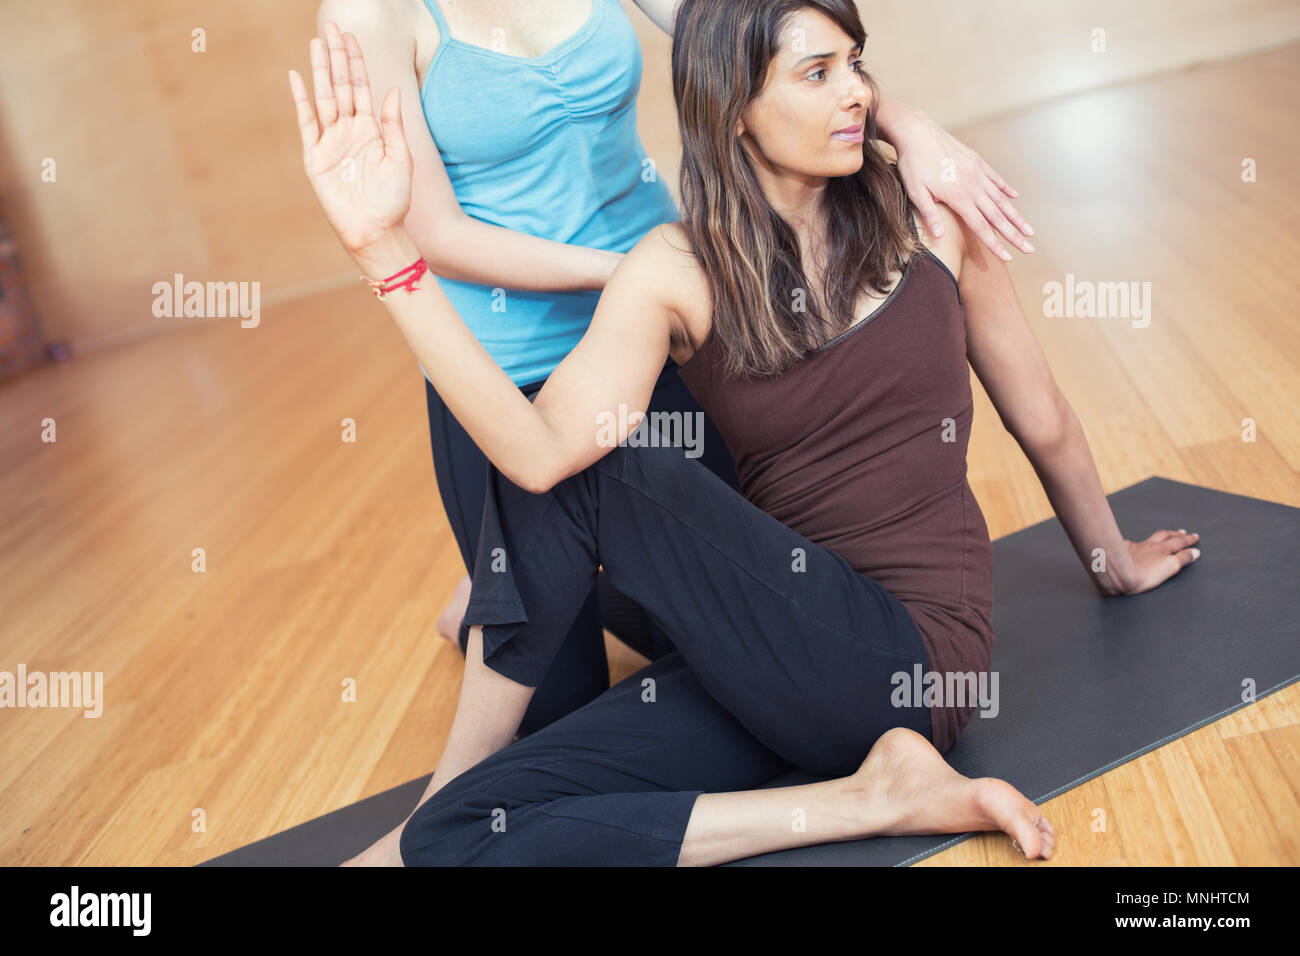 Two People Practice Yoga Partner High Resolution Stock Photography And Images Alamy